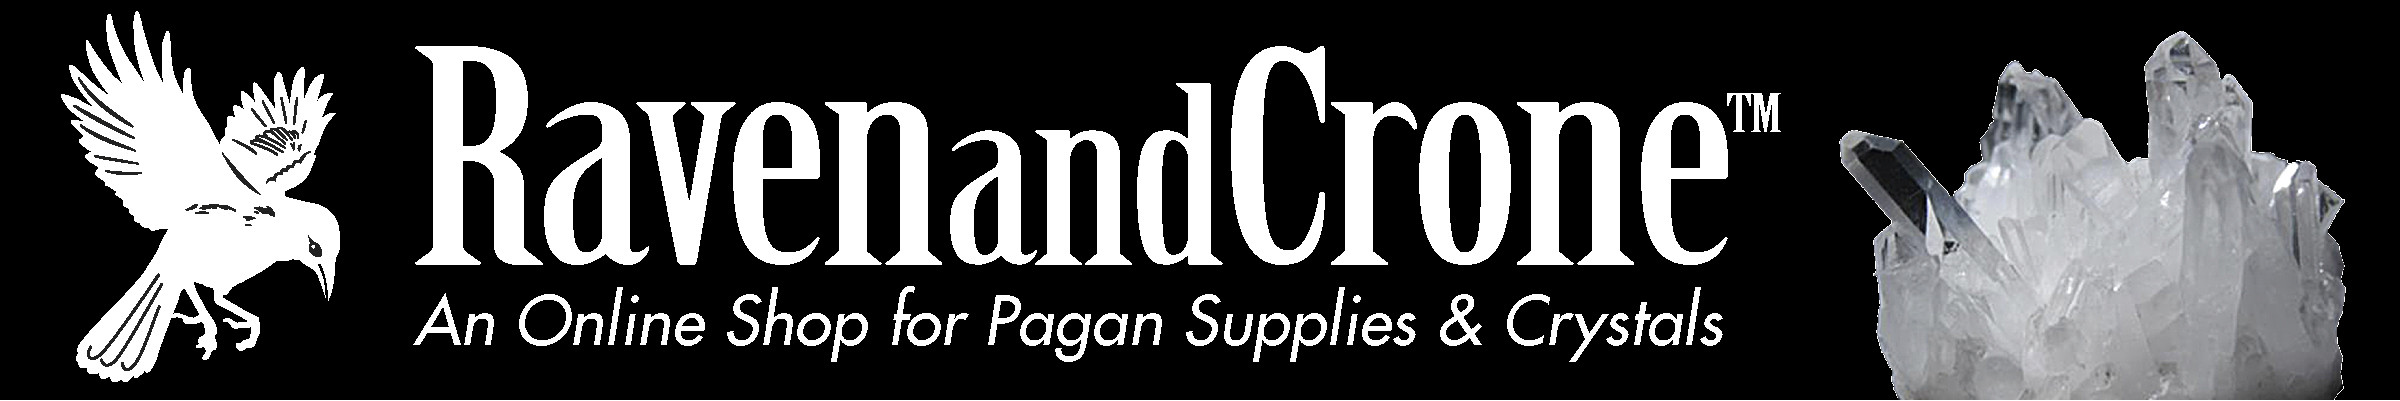 pagan and wiccan supplies, ritual tools, wicca, witchcraft